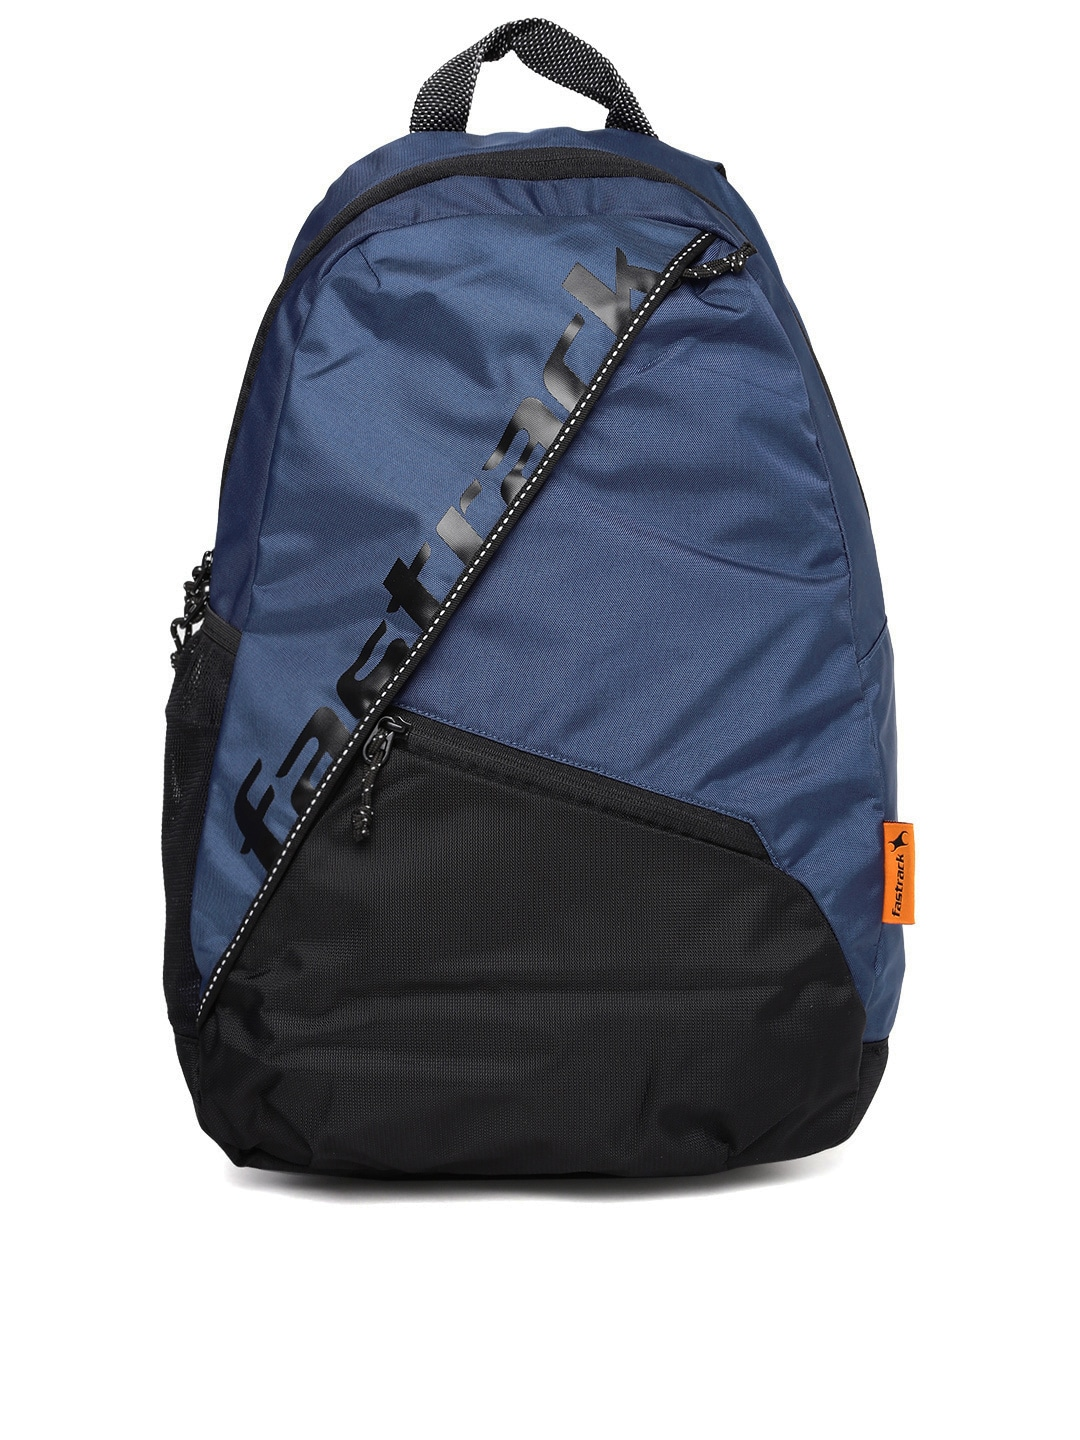 8f39a15f12 Backpacks - Buy Backpack Online for Men